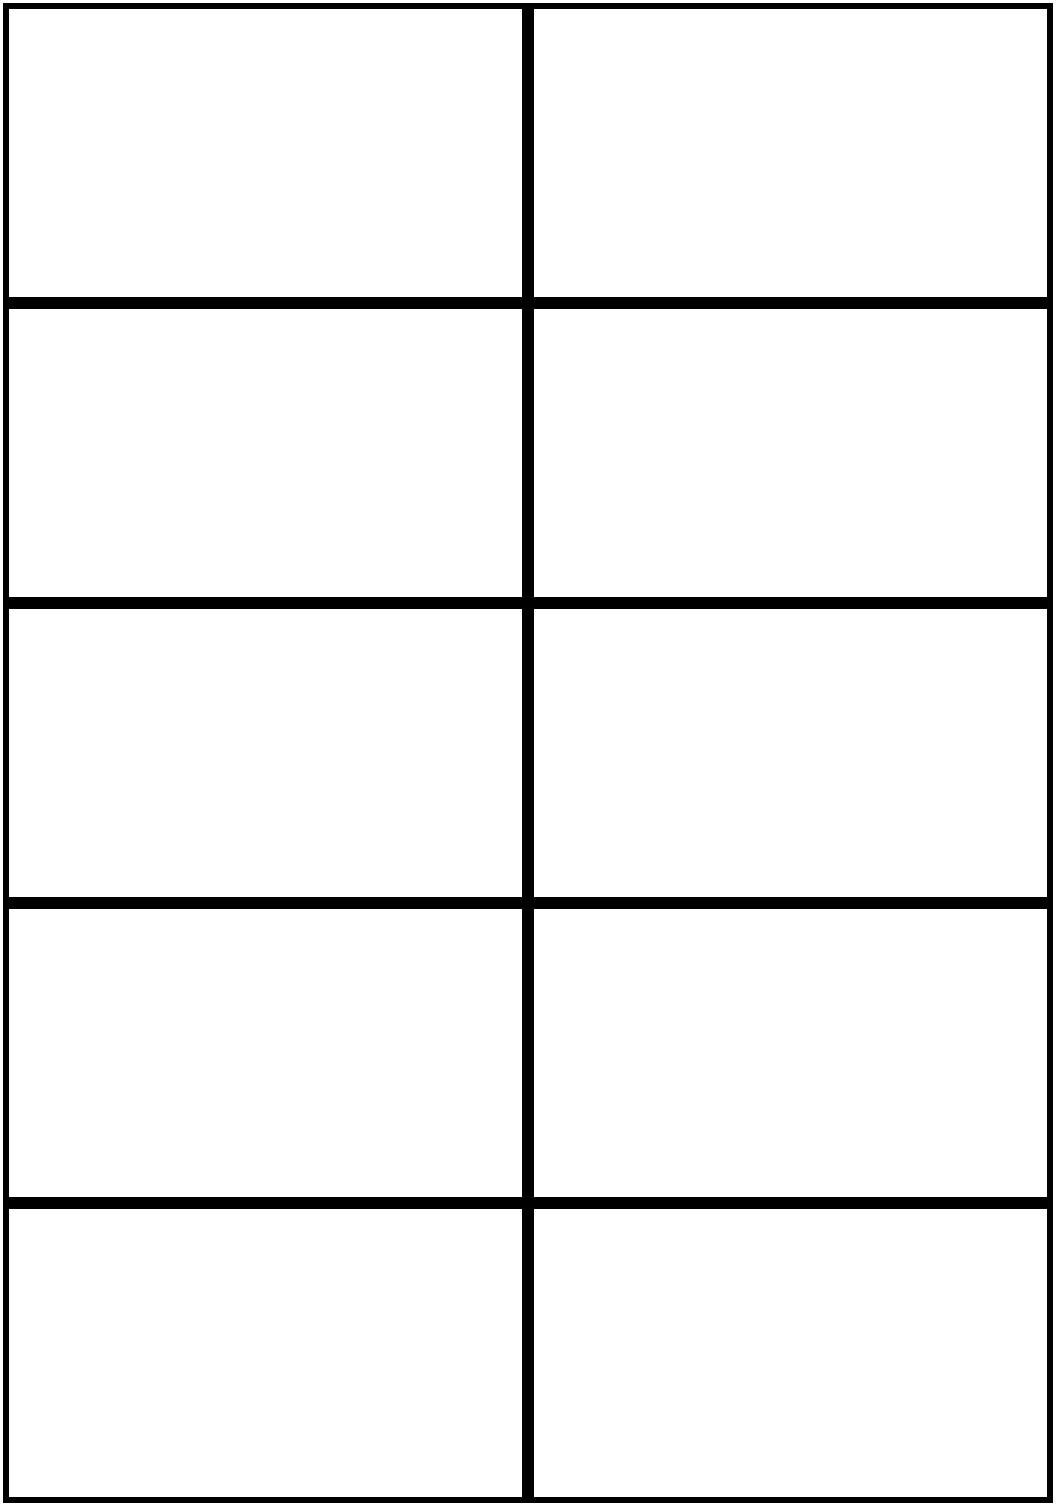 Image Result For Flashcards Template Word | Worksheets | Free - Free Printable Blank Business Cards